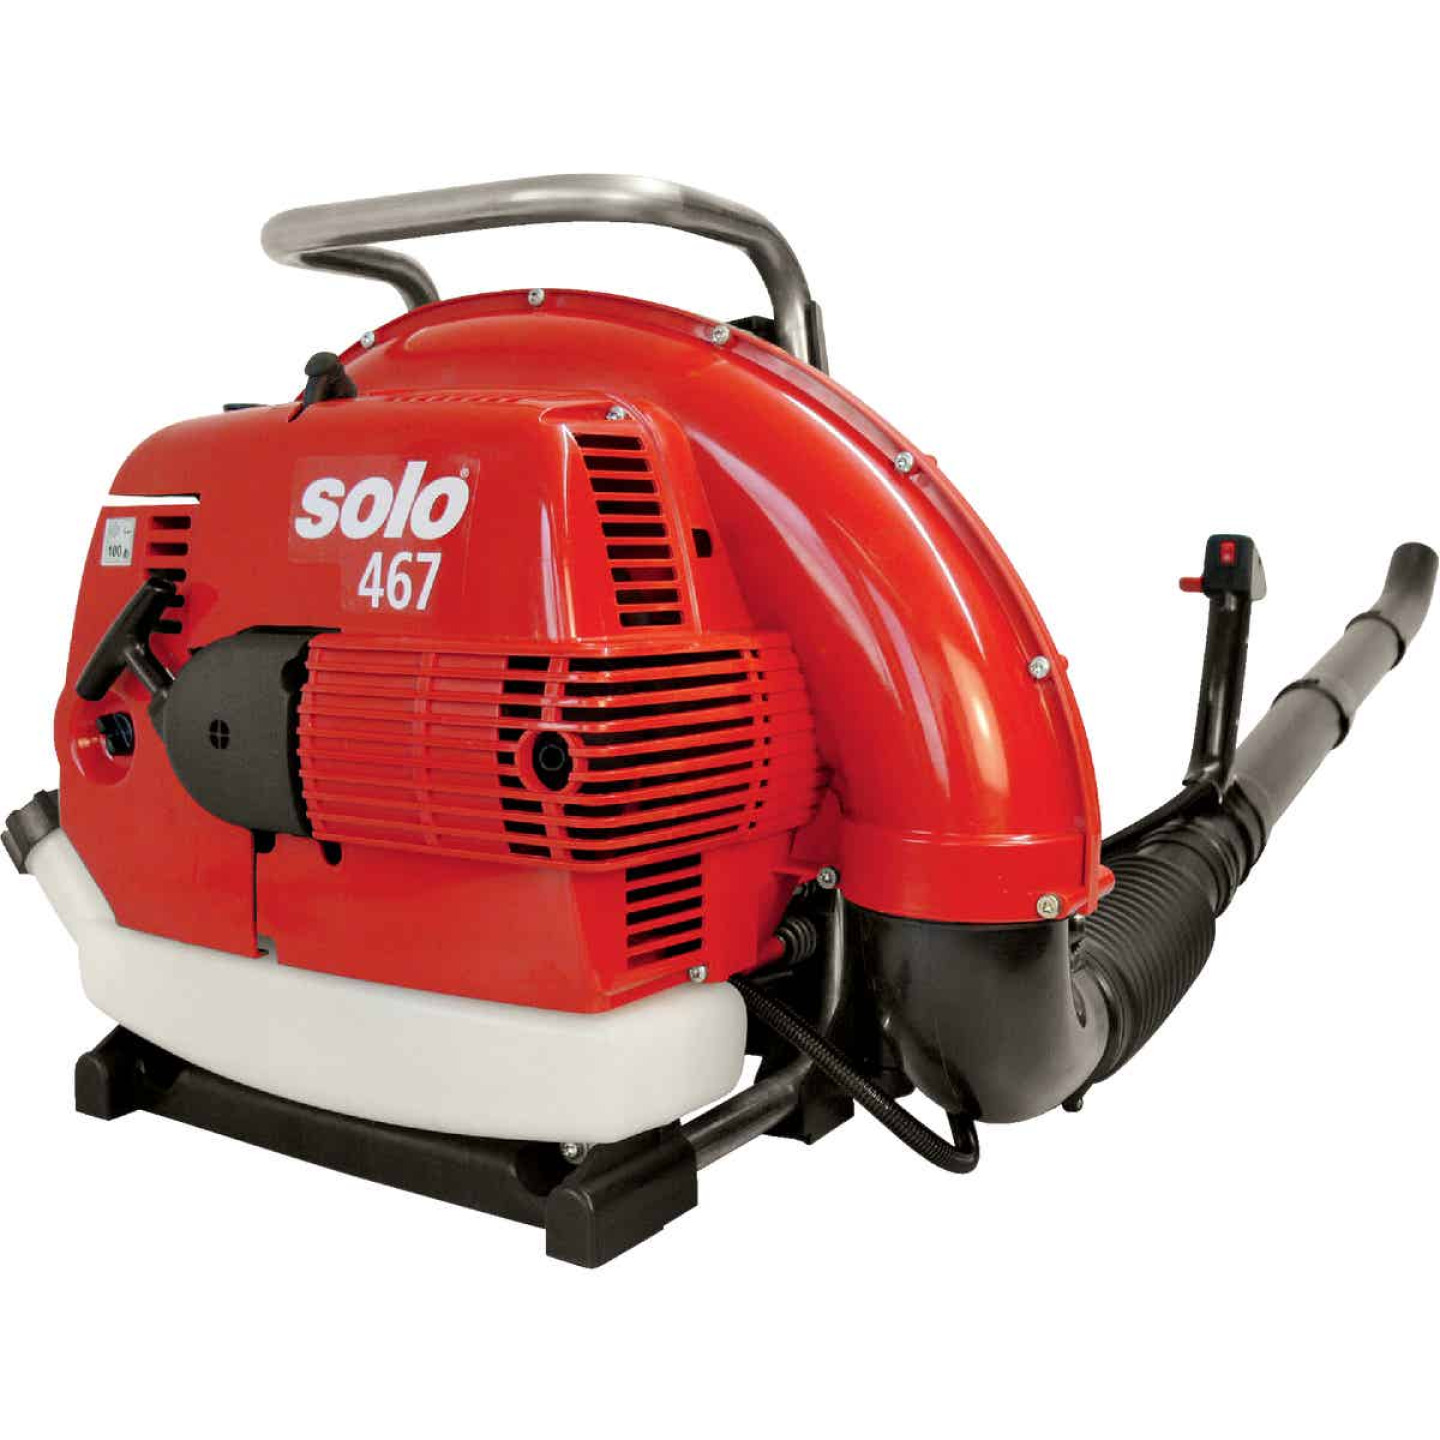 Solo 824 CFM 66.5cc Backpack Gas Blower Image 1